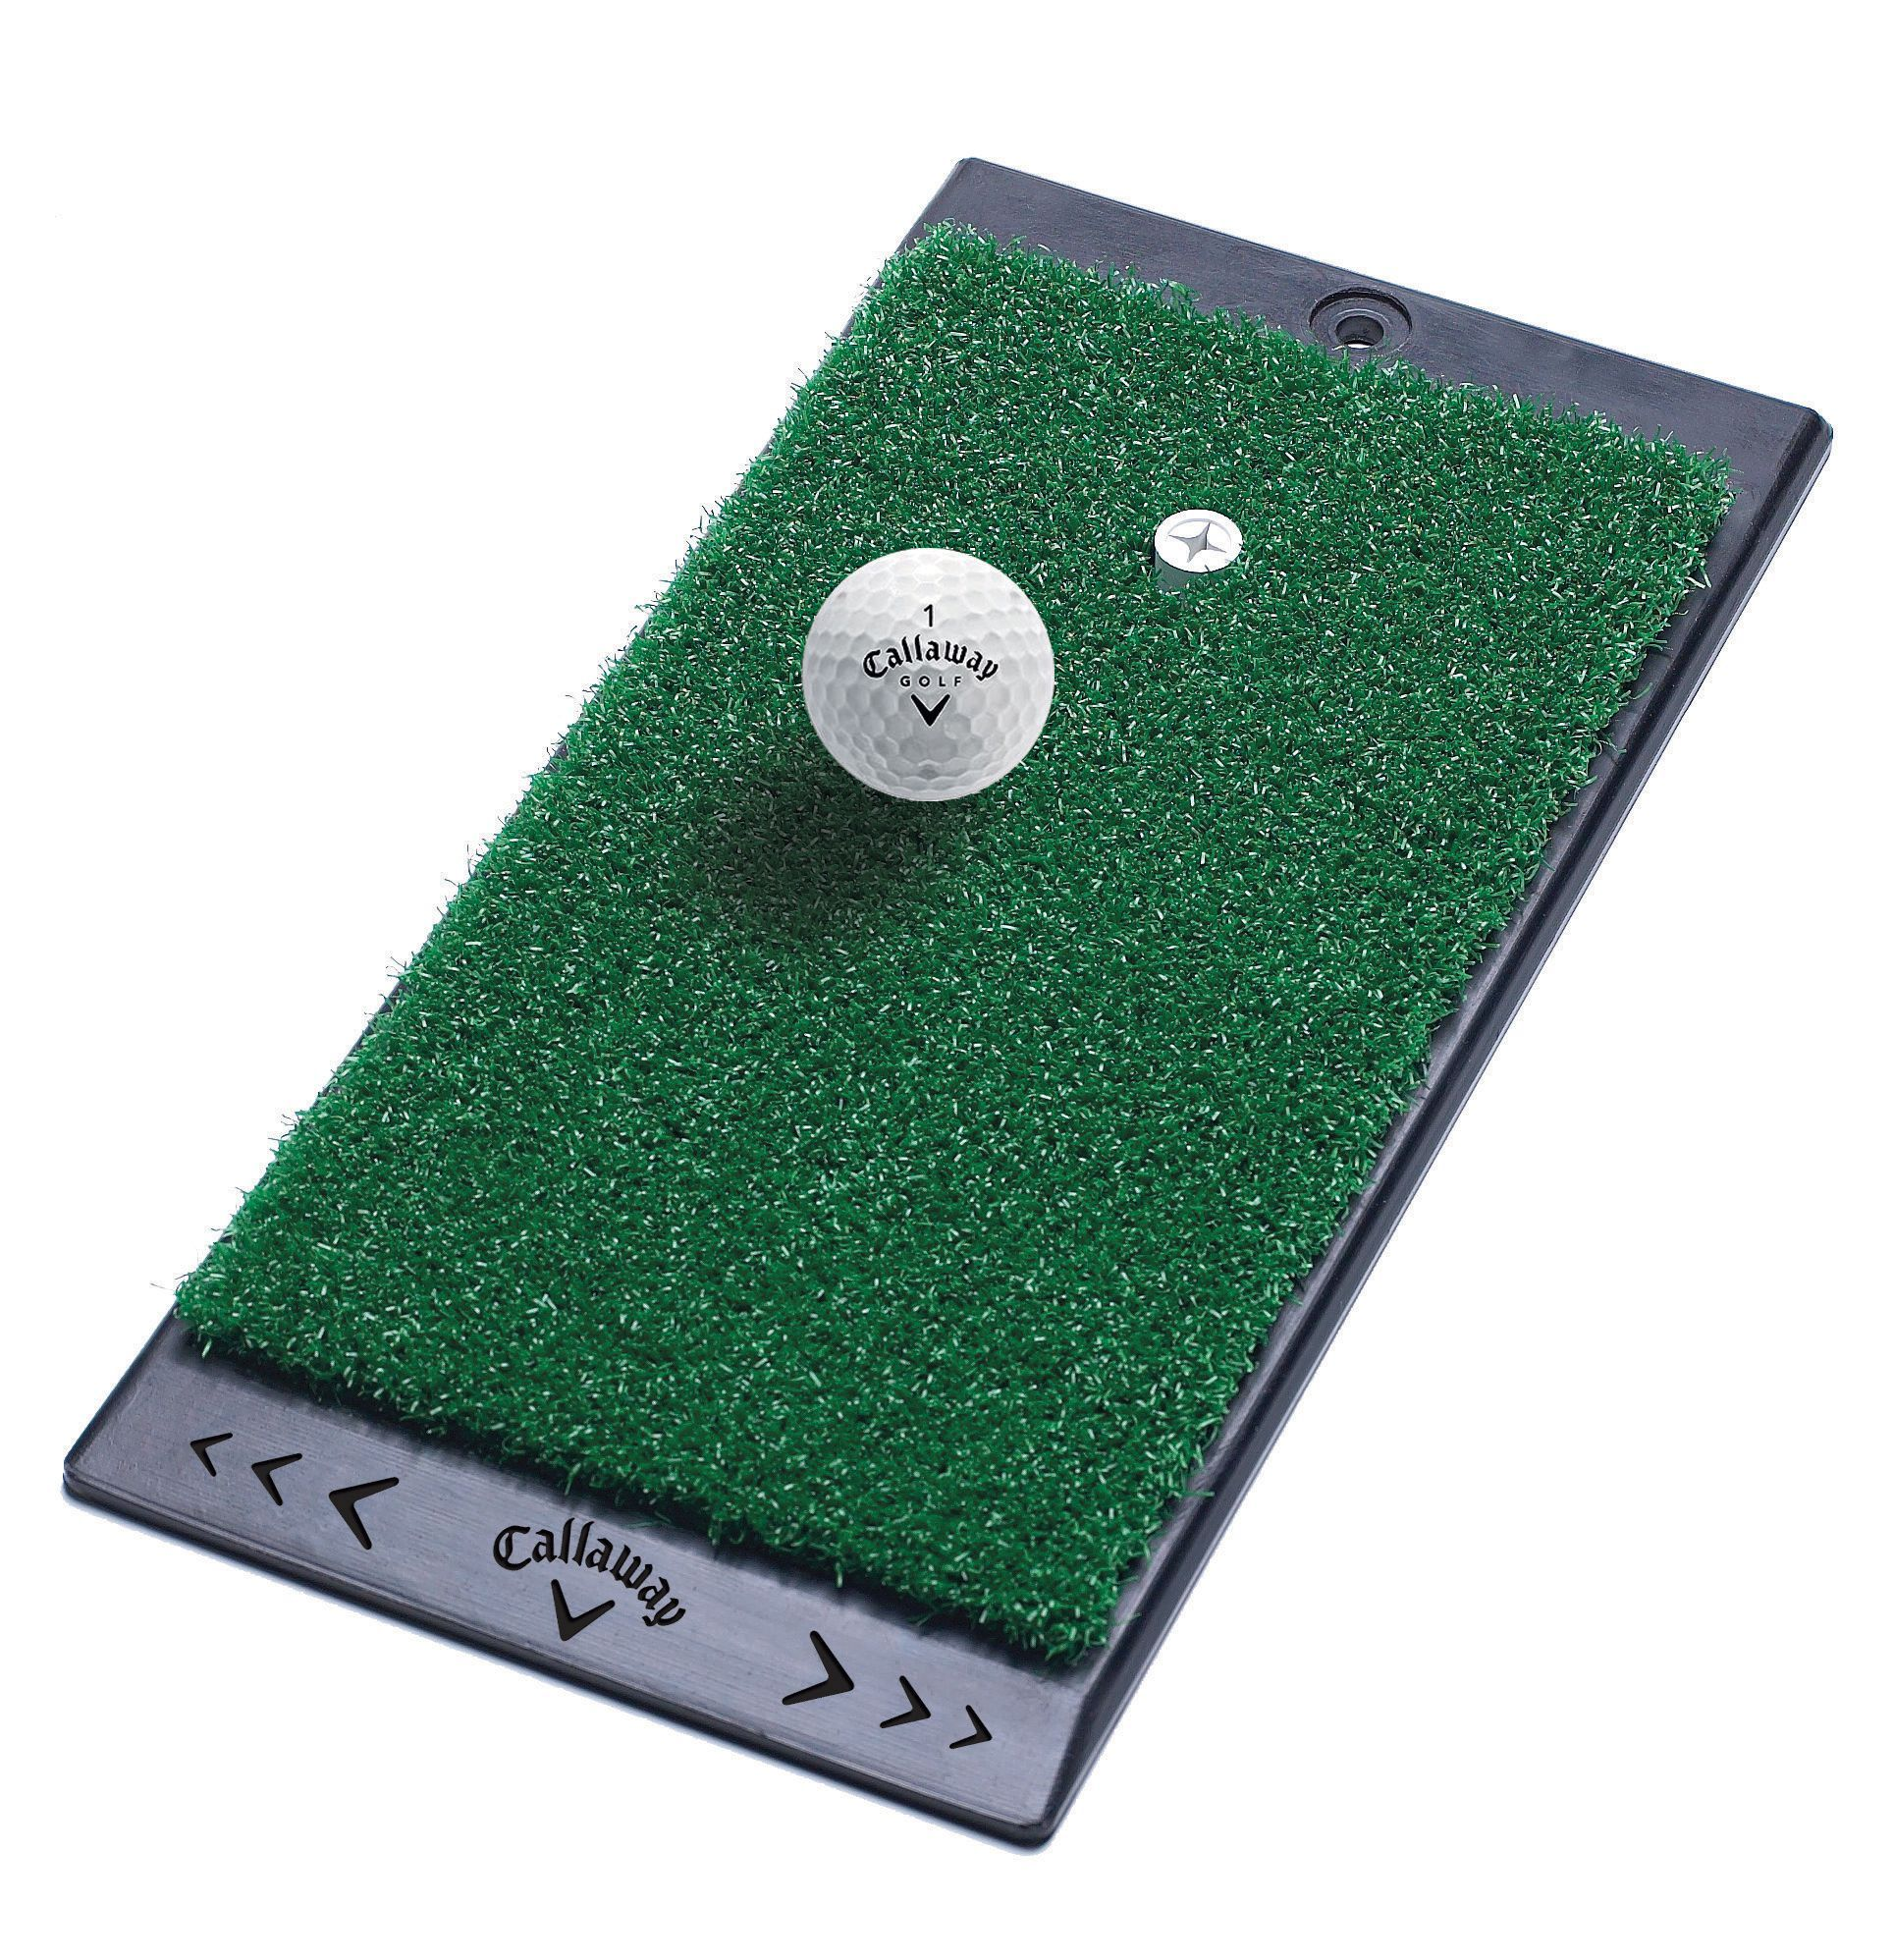 swing nylon from comfortable best residential mats size backyard pad not material ball practice mat green include thickness golf product for store package elevating your a the color training hitting